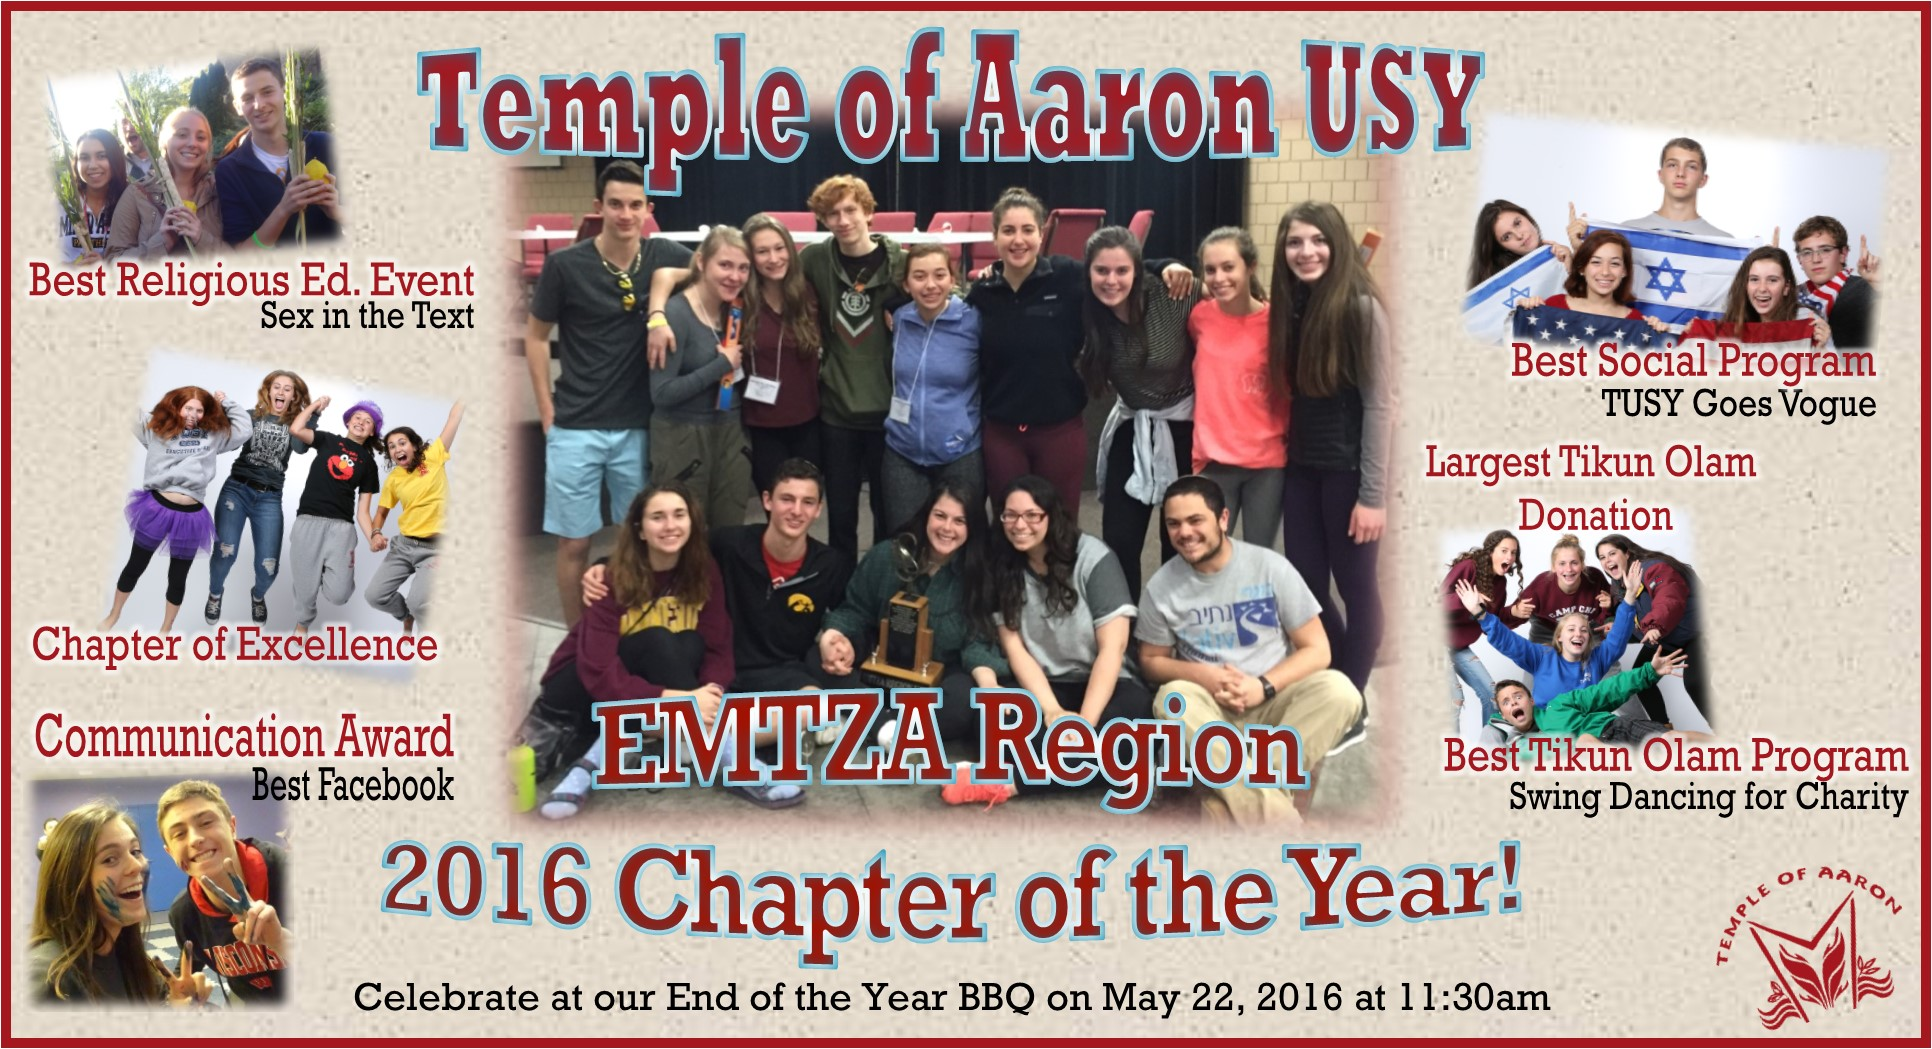 TUSY Wins Chapter of the Year!